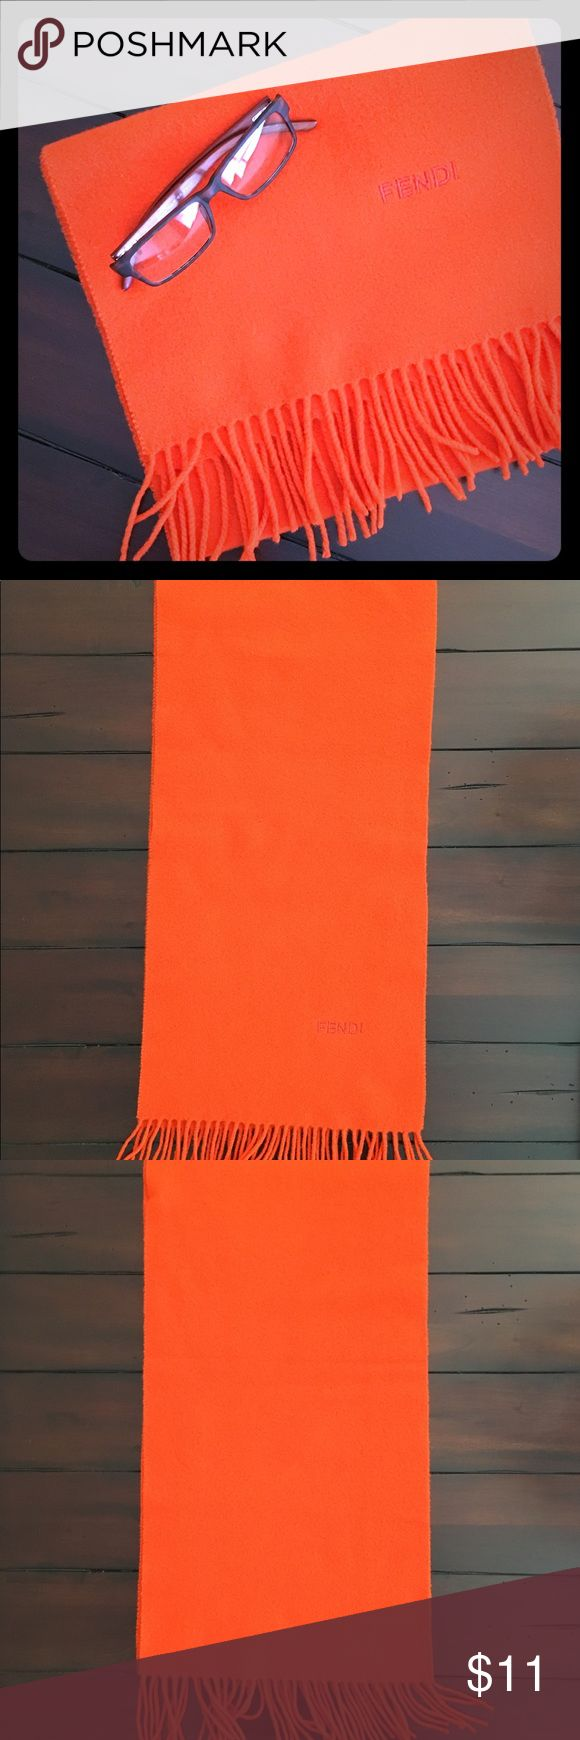 Vintage Fendi Scarf 100% lamswool Vintage Fendi scarf. Has a tiny area of wear as indicated in photos. Vibrant orange color. If you need measurements, let me know. I'm just trying to get everything listed first. Willing to bundle with other items. Fendi Accessories Scarves & Wraps